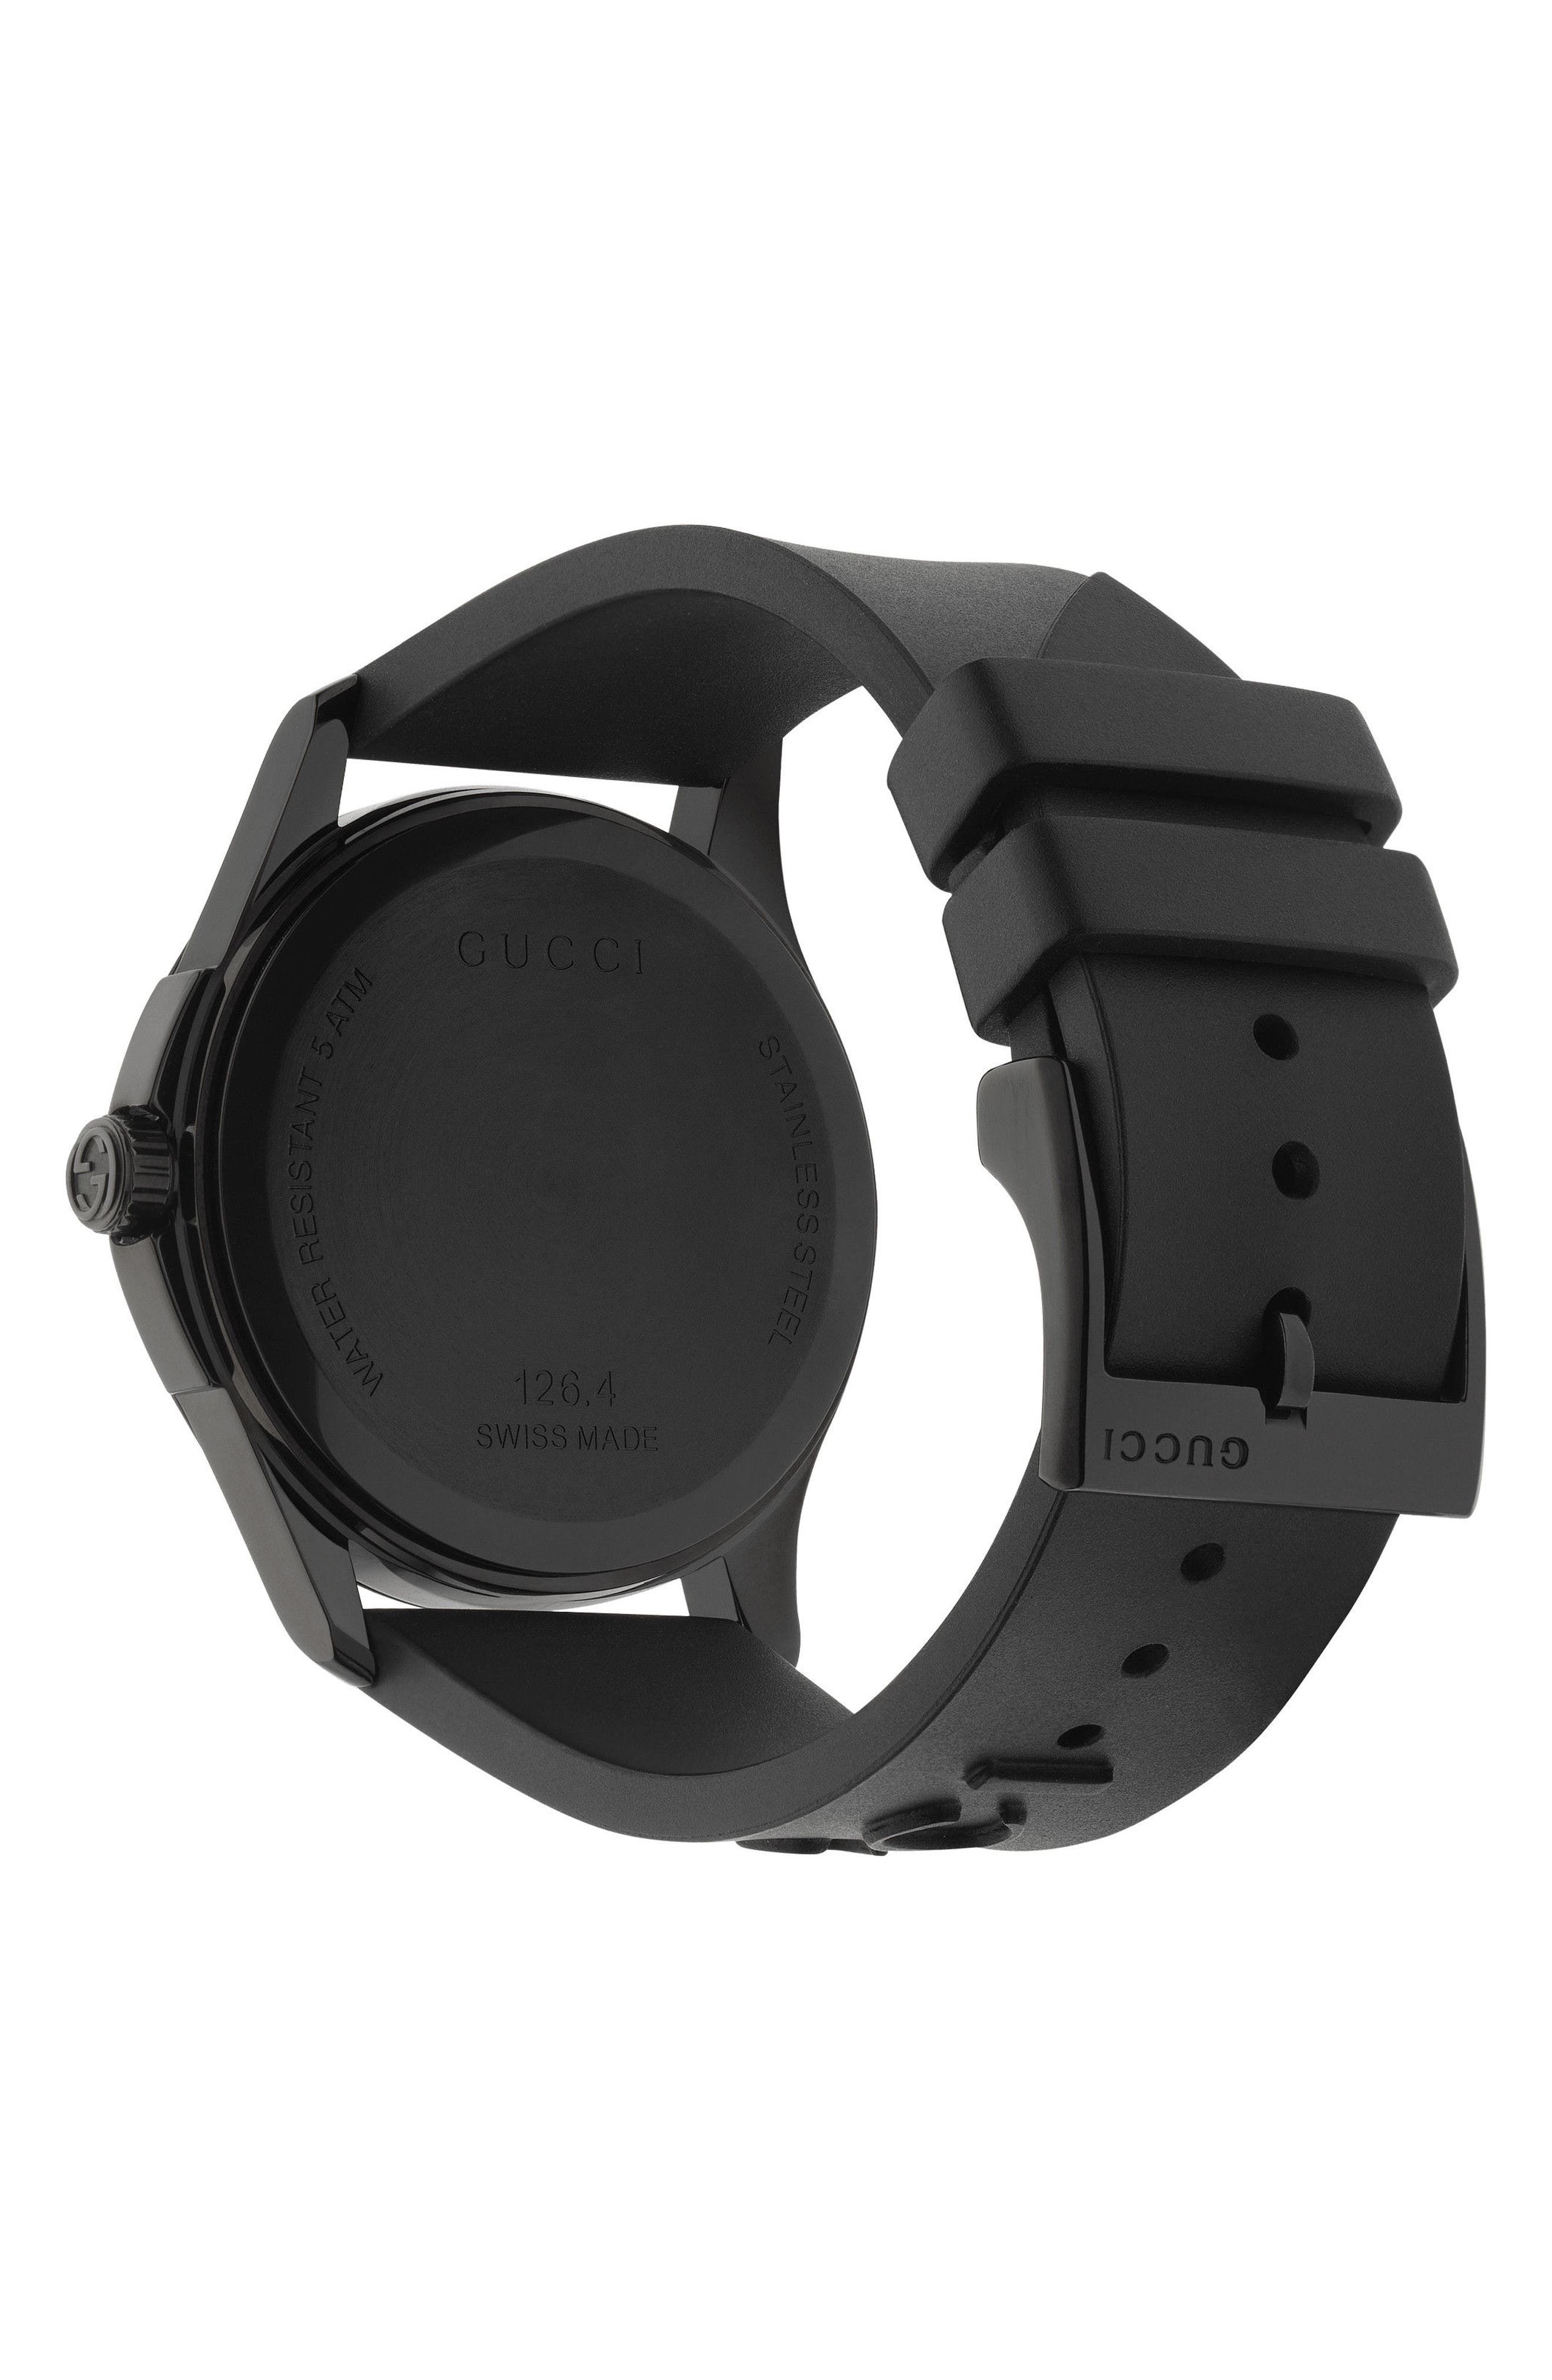 GUCCI, Real Rubber Strap Watch, 38mm, Alternate thumbnail 2, color, BLACK